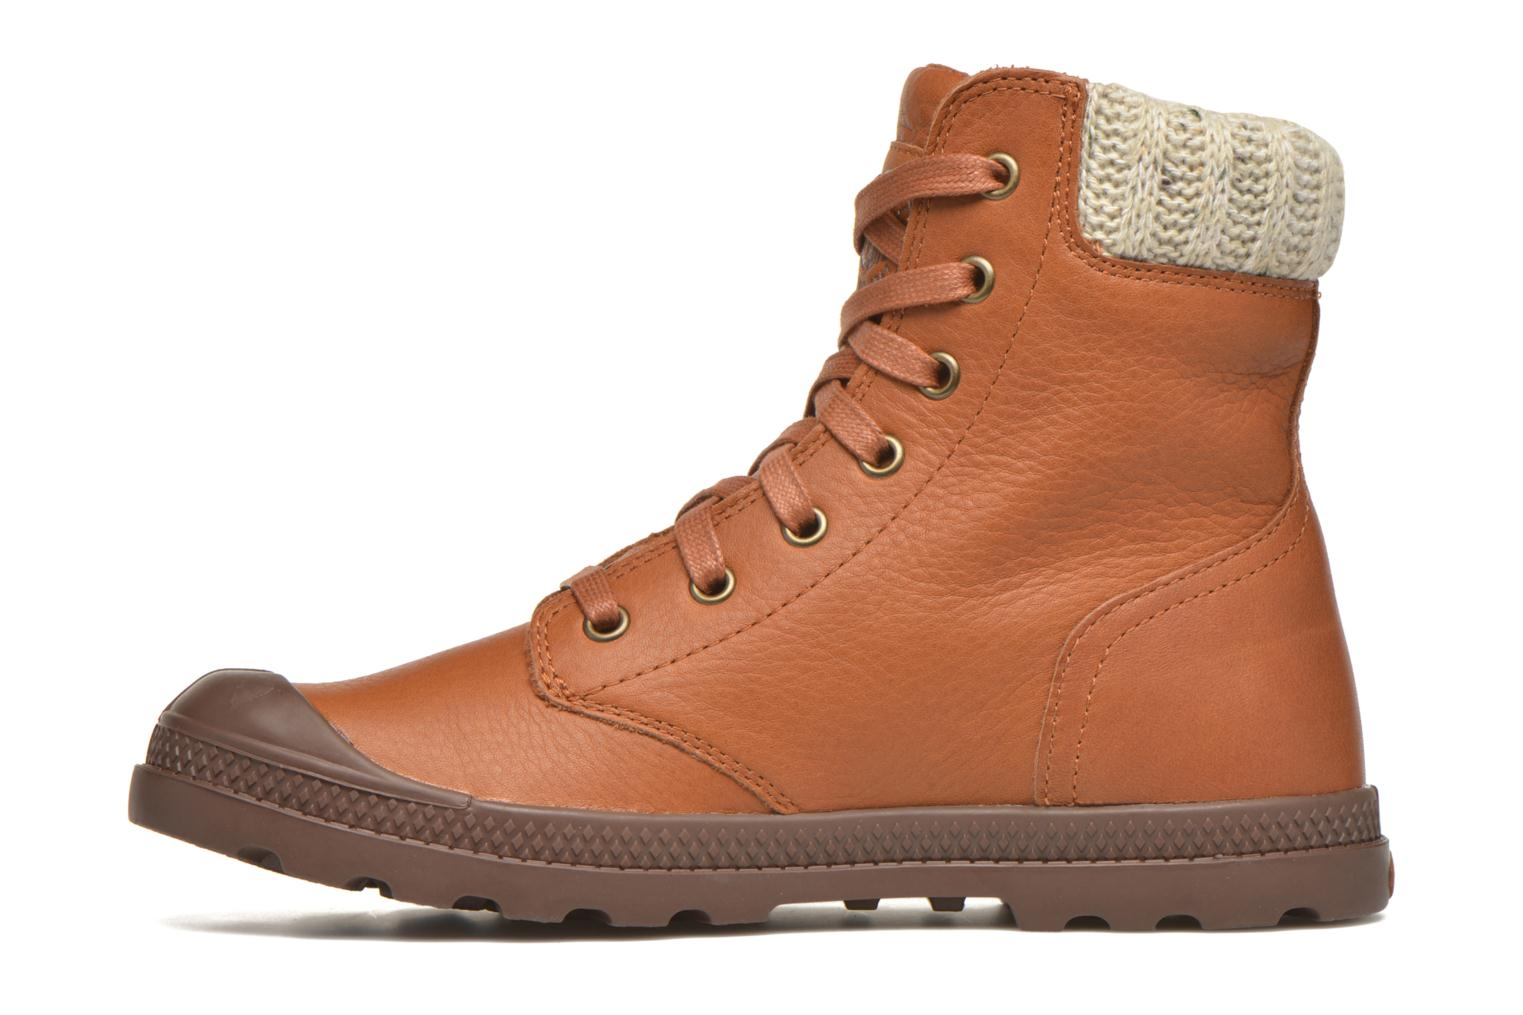 Bottines et boots Palladium Pampa Knit LP F Marron vue face